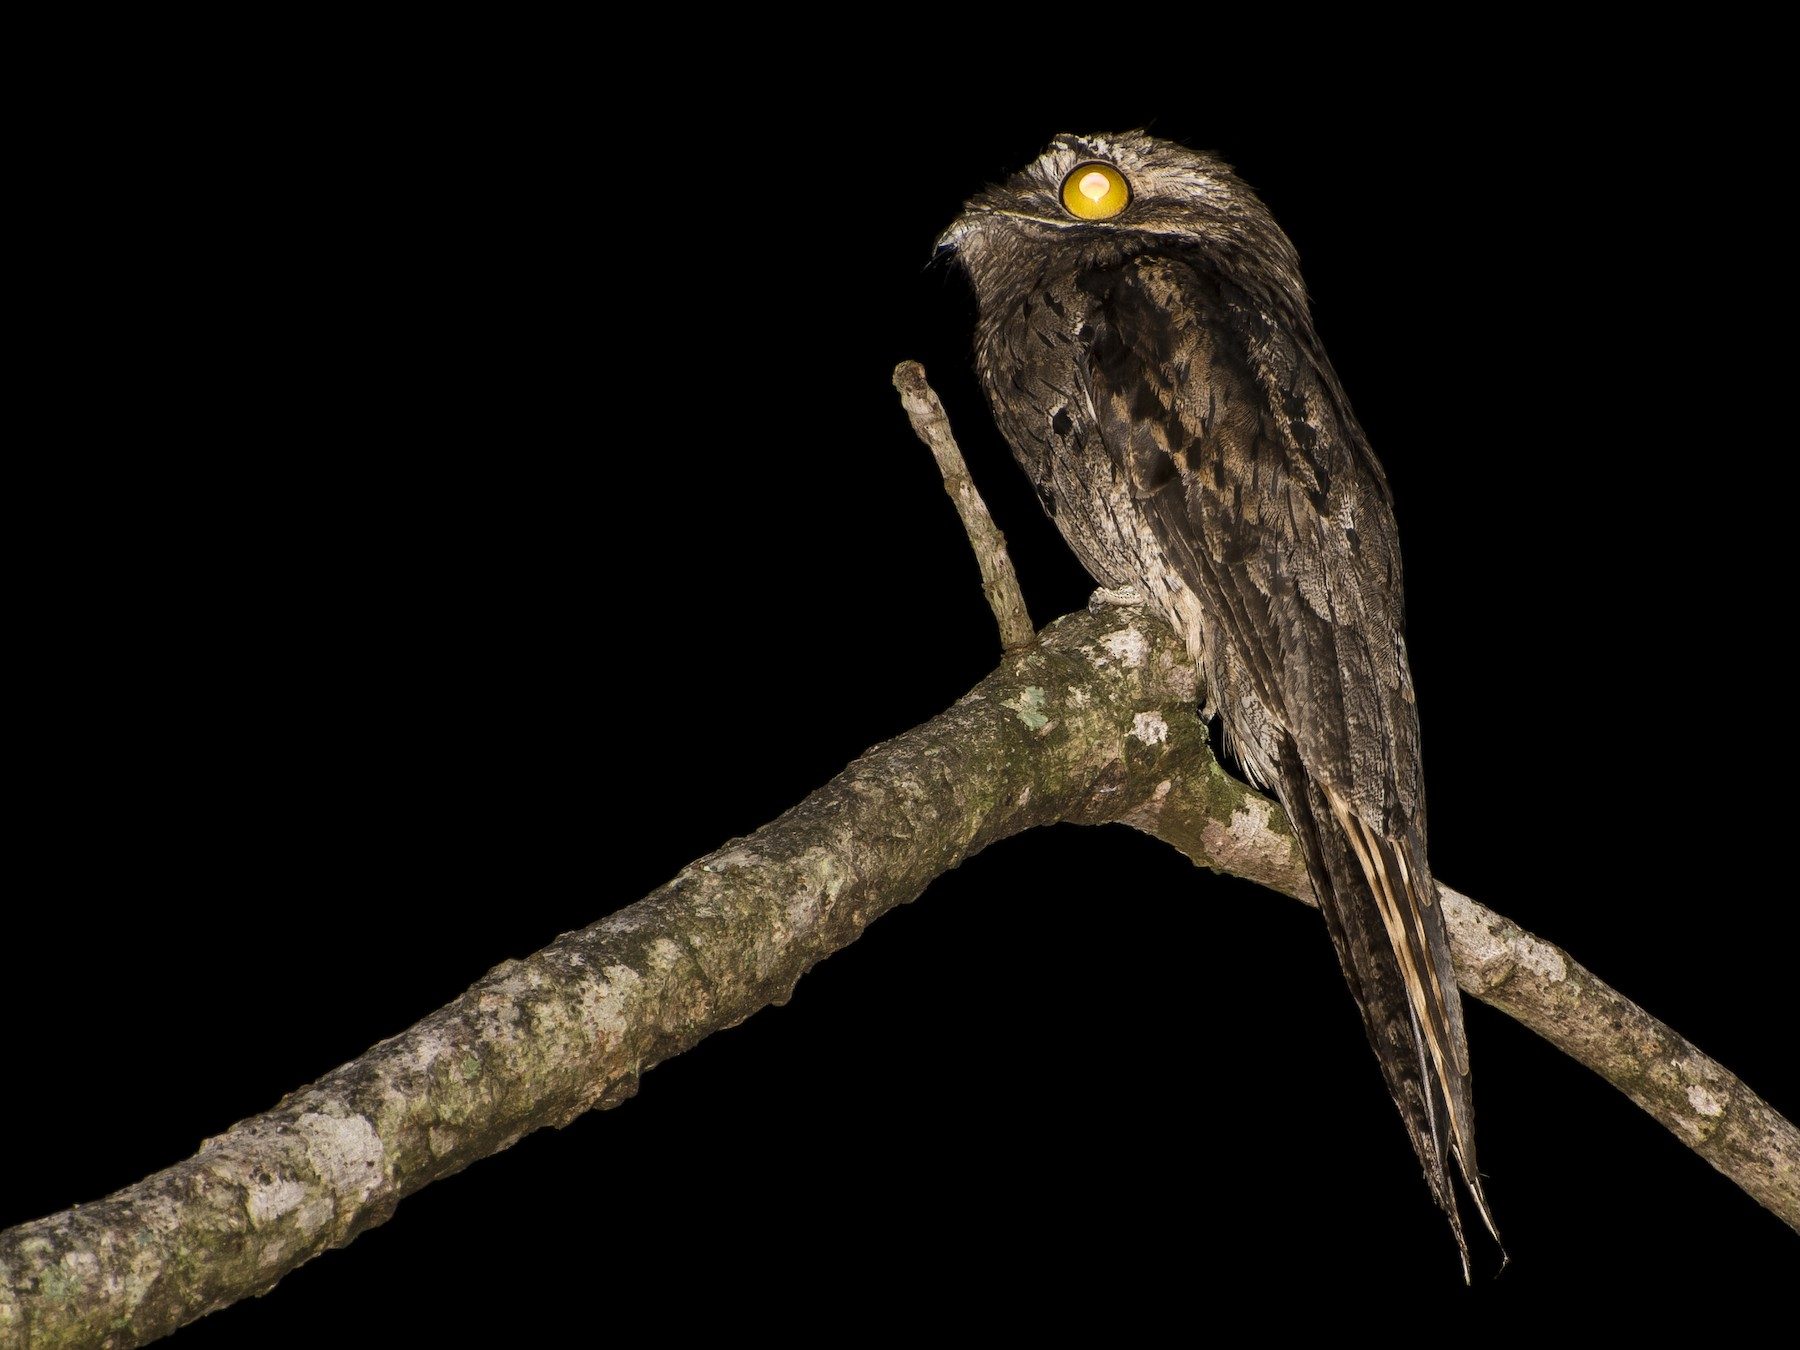 Common Potoo - Luiz Carlos Ramassotti